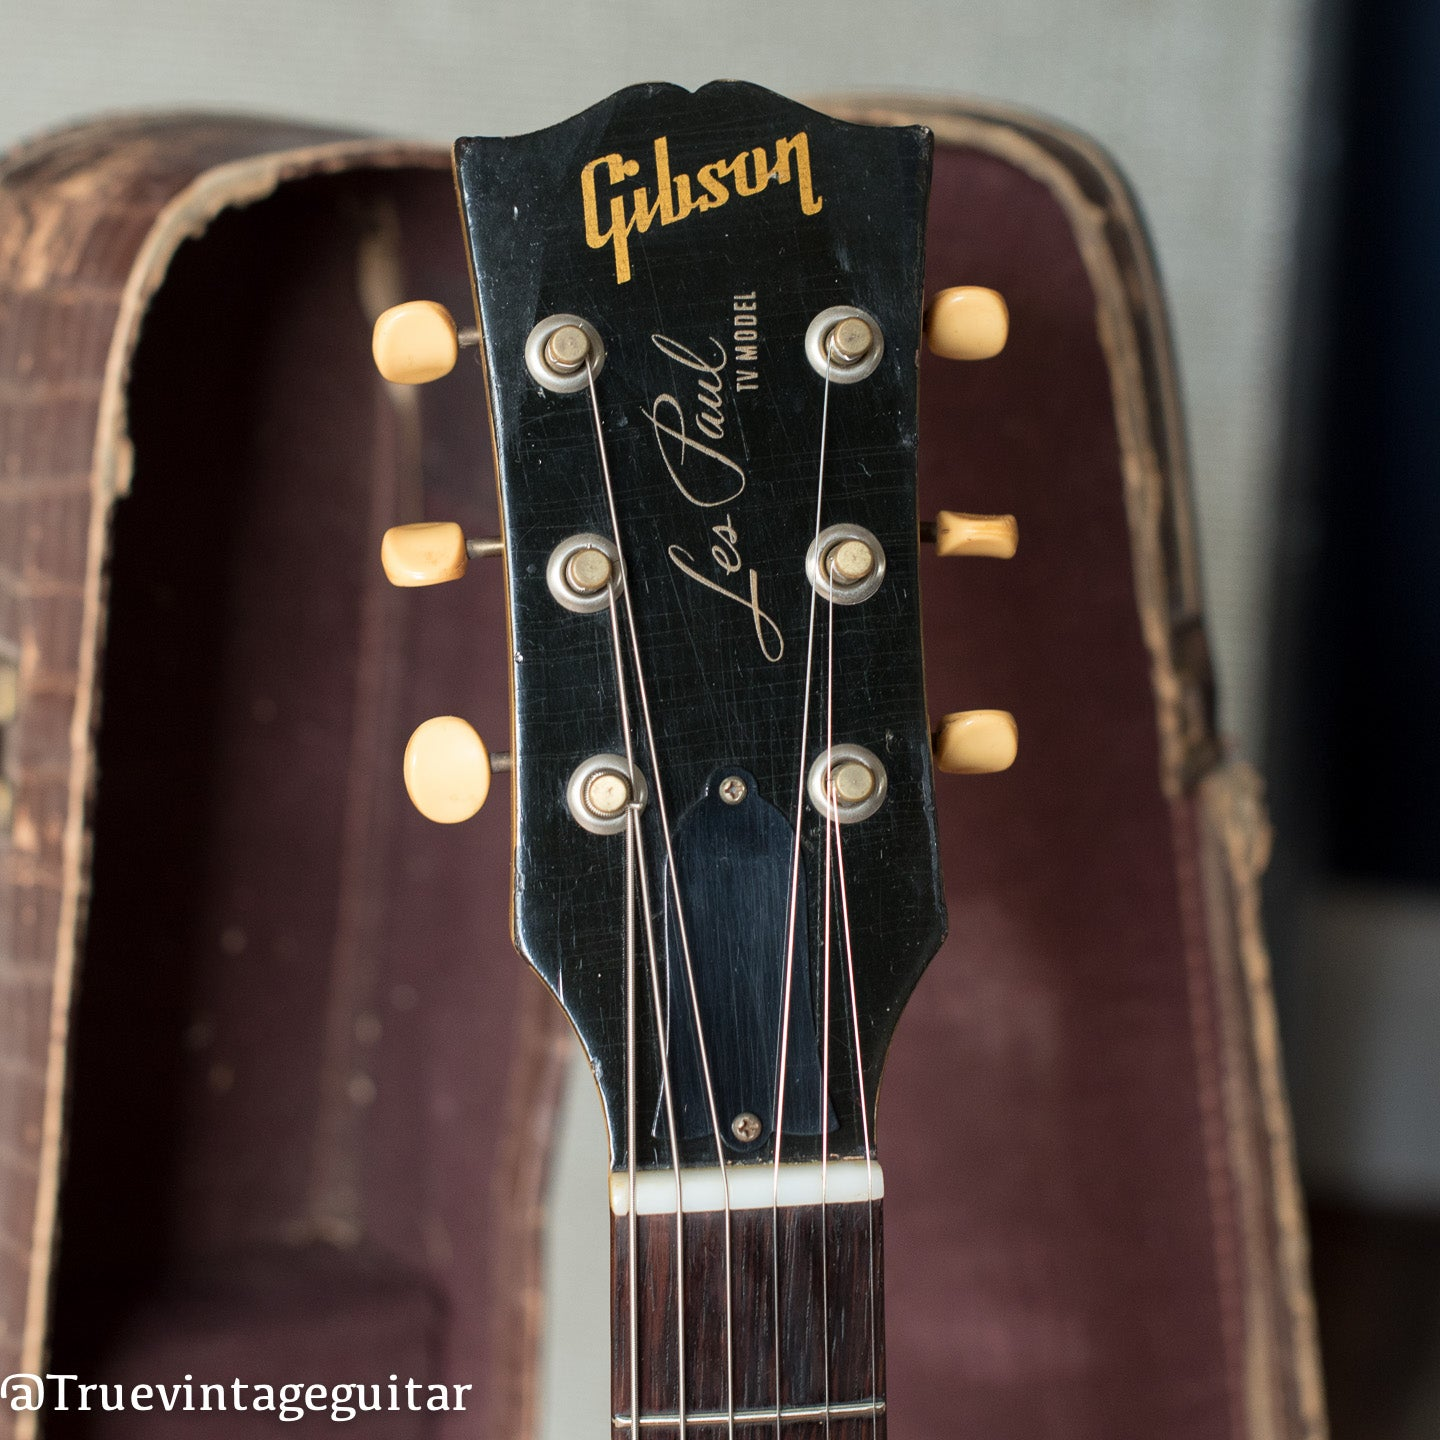 vintage Gibson Les Paul guitar collector